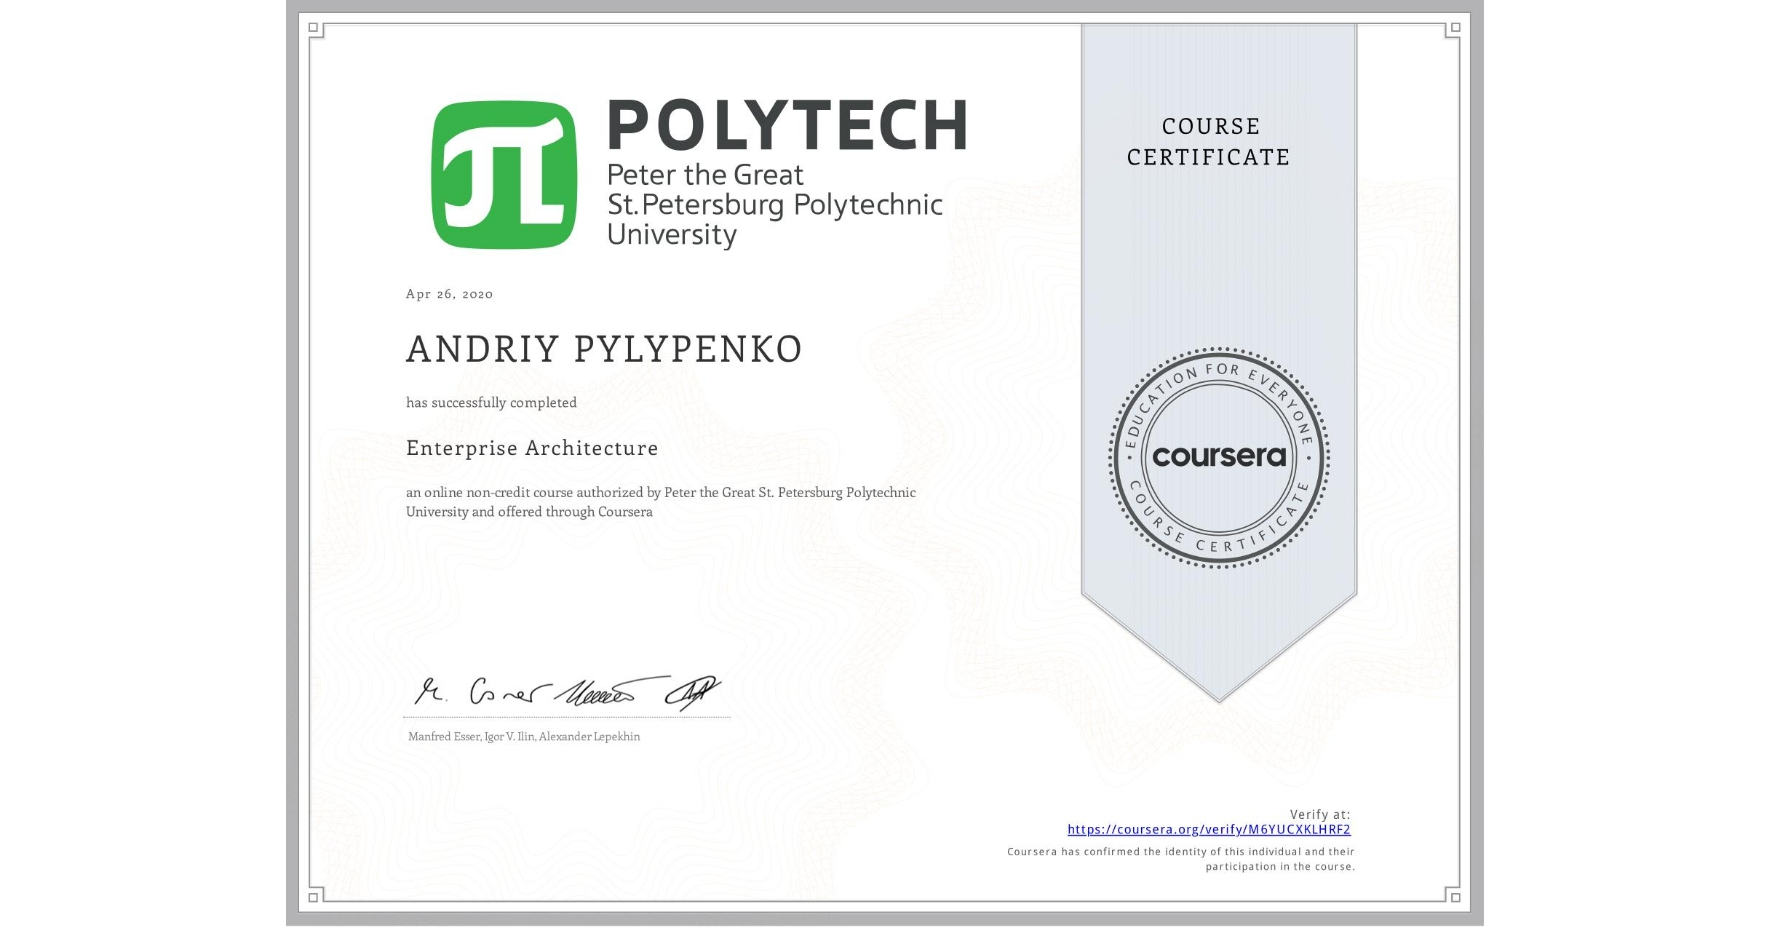 View certificate for ANDRIY PYLYPENKO, Enterprise Architecture, an online non-credit course authorized by Peter the Great St. Petersburg Polytechnic University and offered through Coursera